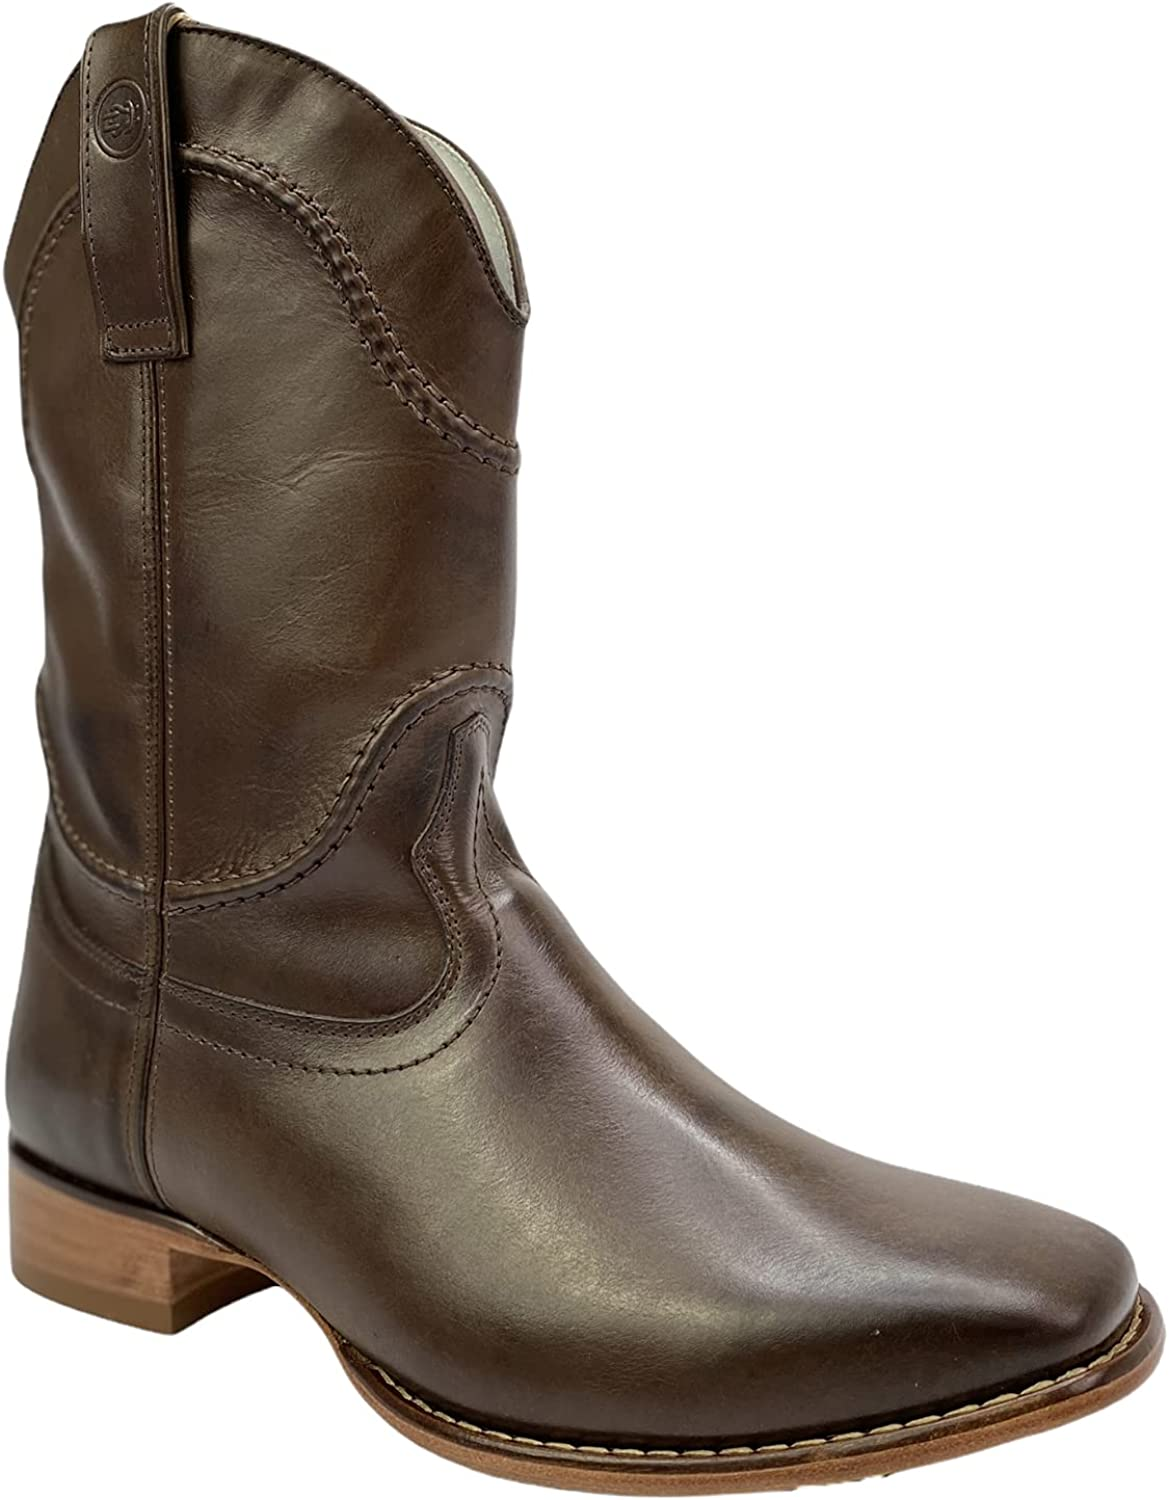 KING USA TEXAS Men's Western Max 60% OFF Leather Cowboy Rodeo T Boots San Francisco Mall Square